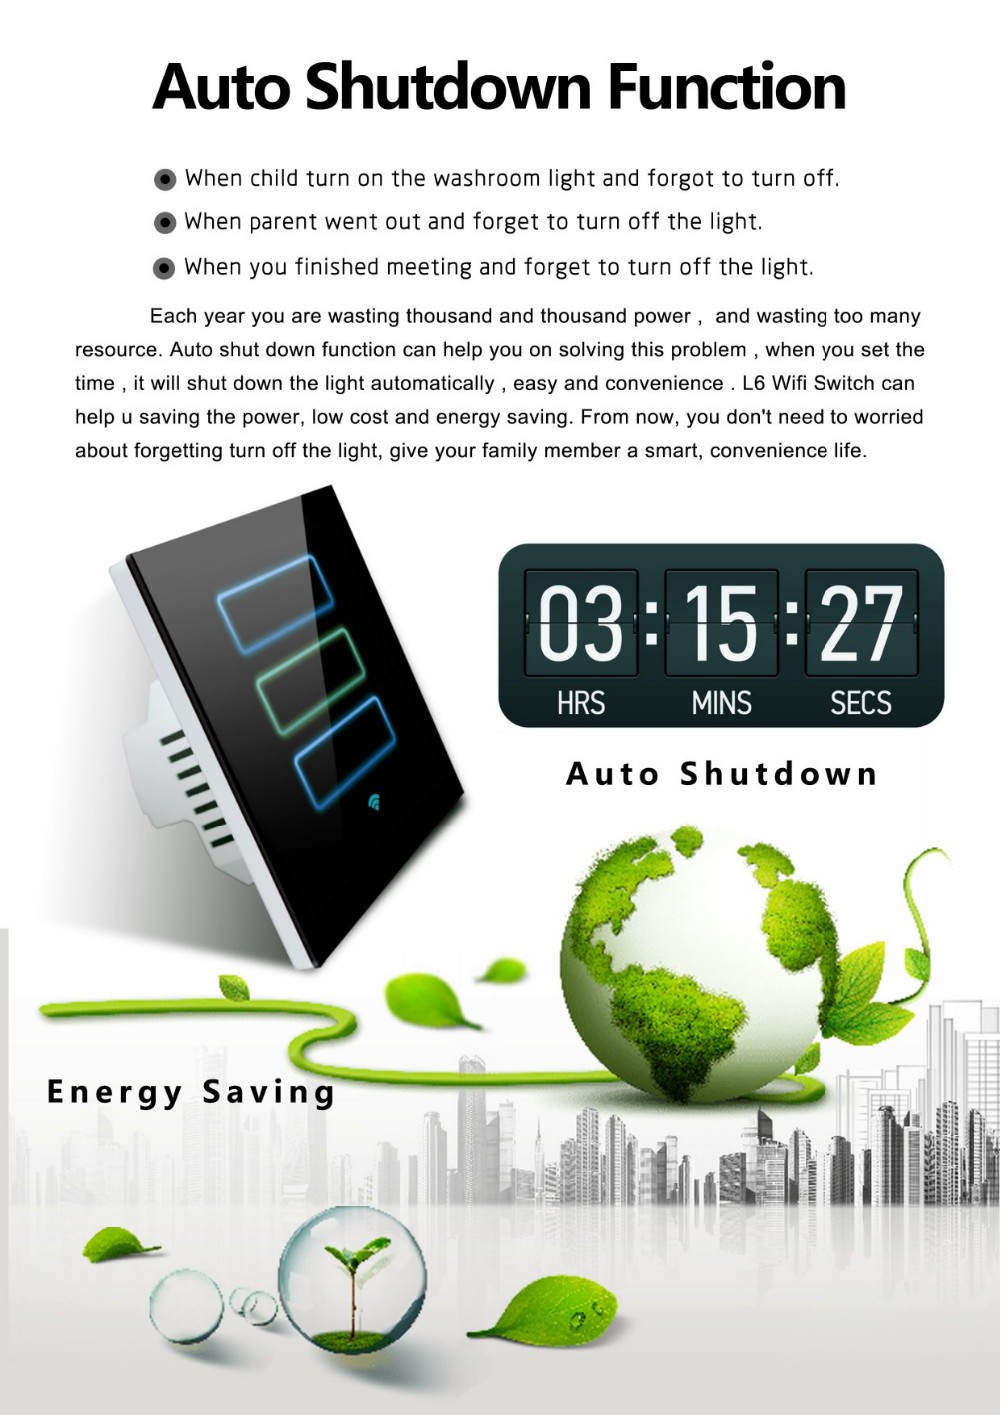 2016 Lanbon Wifi Home Automation Smart Power Wall Switch Controlled Via Ios  And Android App  - Buy Home Automation,Wall Switch,Switch Controlled Via